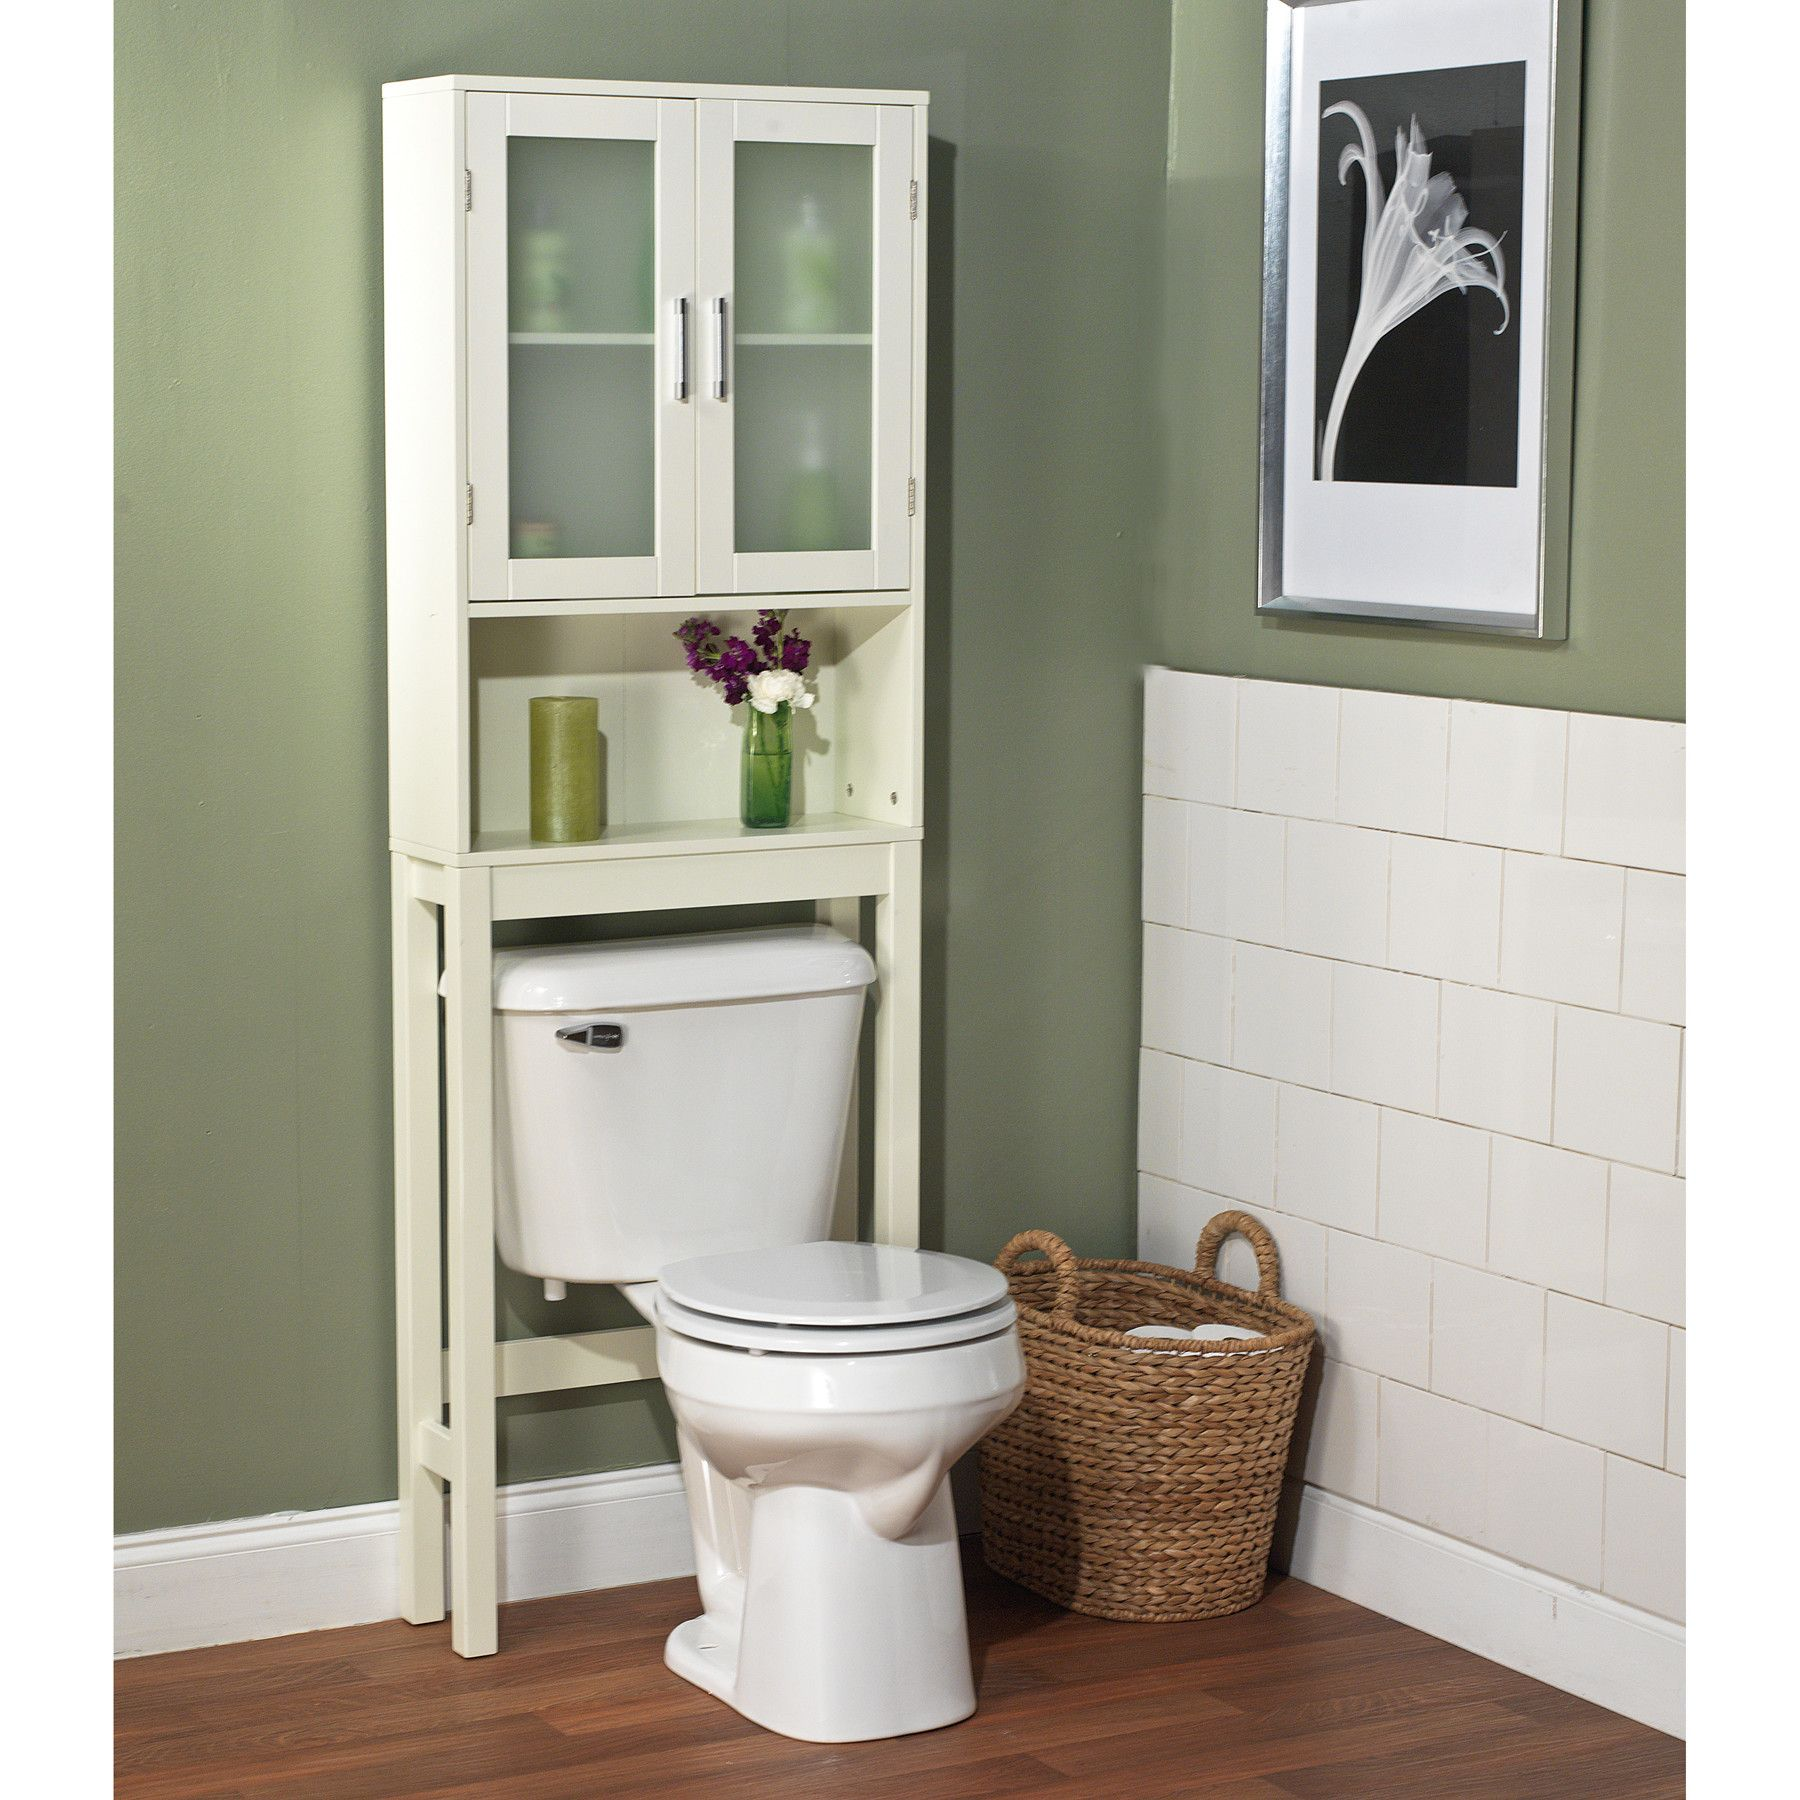 Tms 22 5 X 67 3 Over The Toilet Cabinet Reviews Wayfair  # Muebles Pura Vida